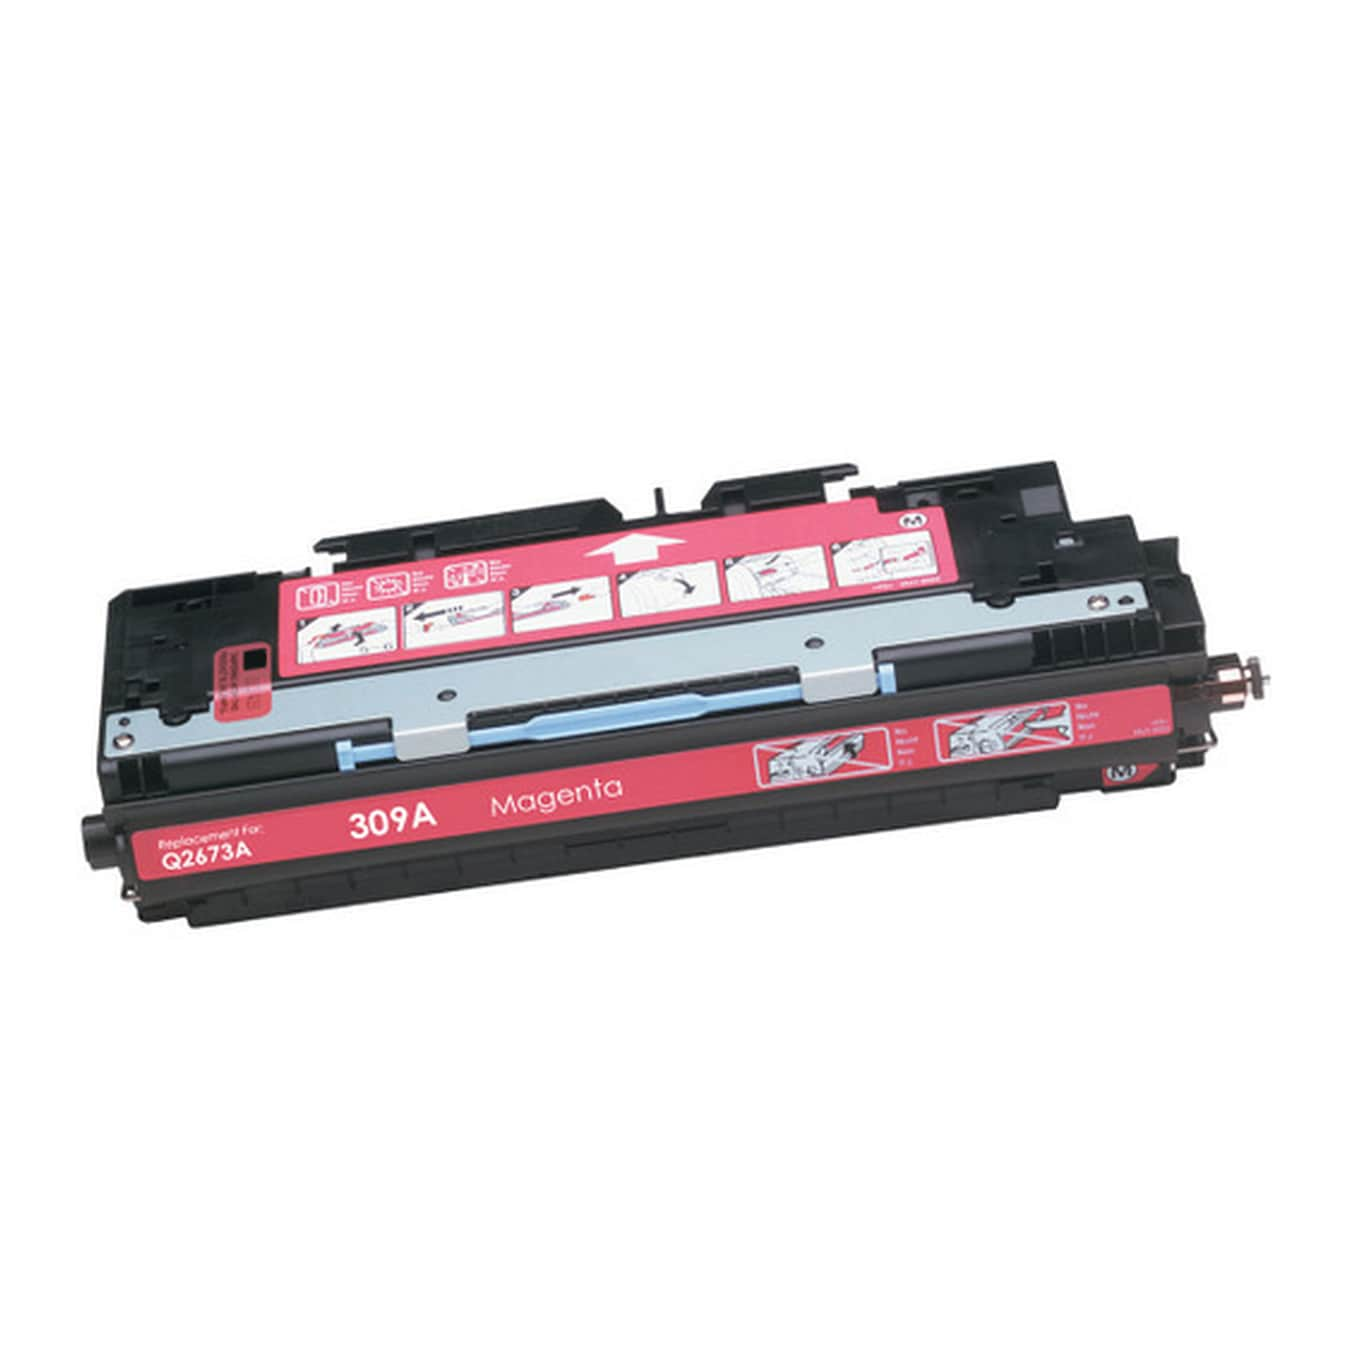 Compatible HP Q2673A Magenta Toner Cartridge